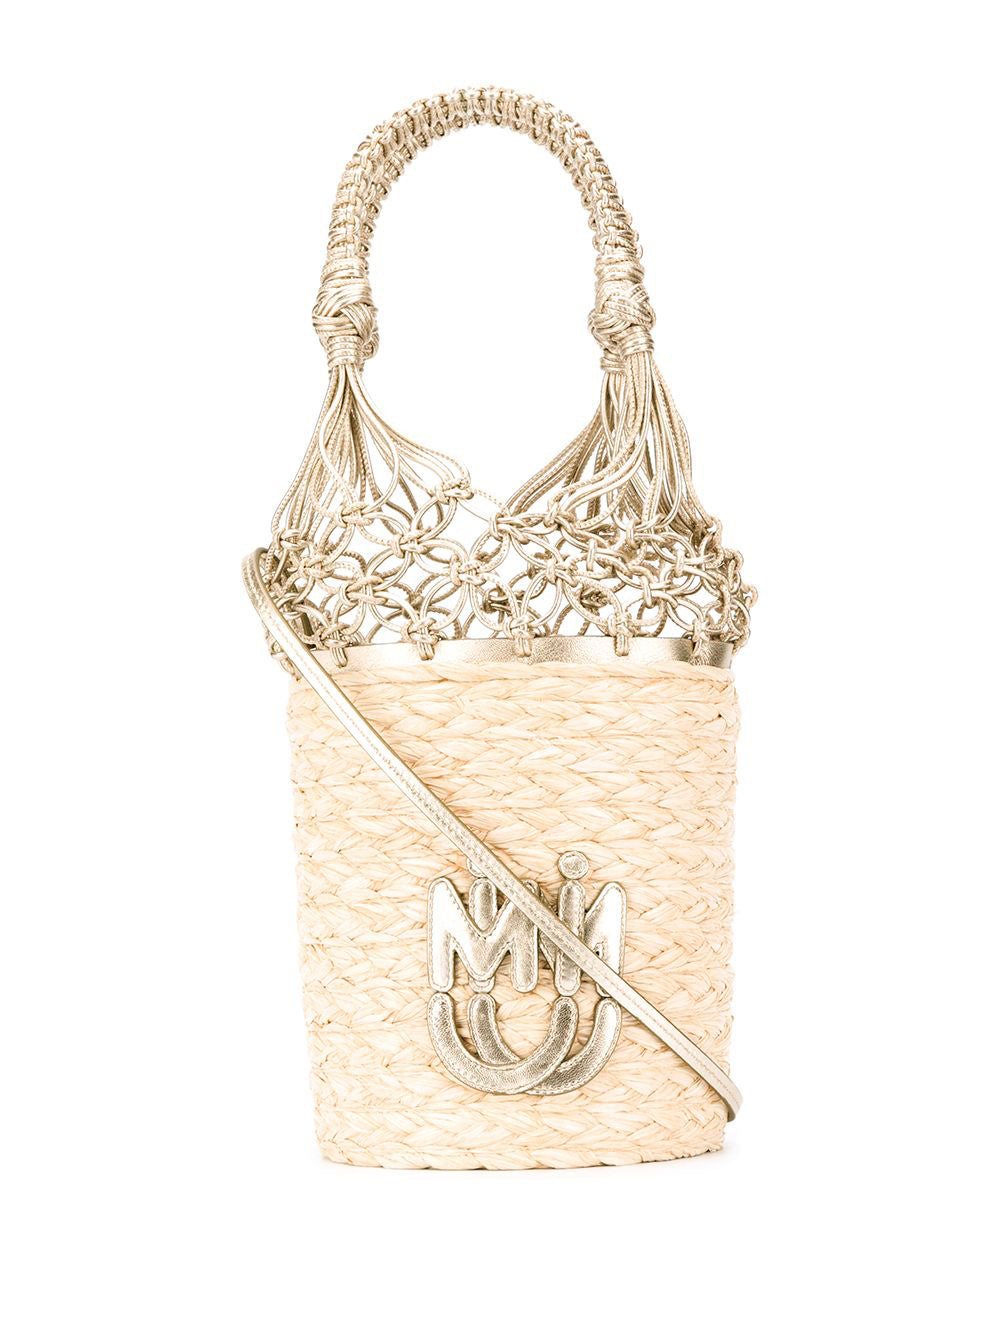 Miu Miu MIU MIU MESH DETAIL BUCKET BAG